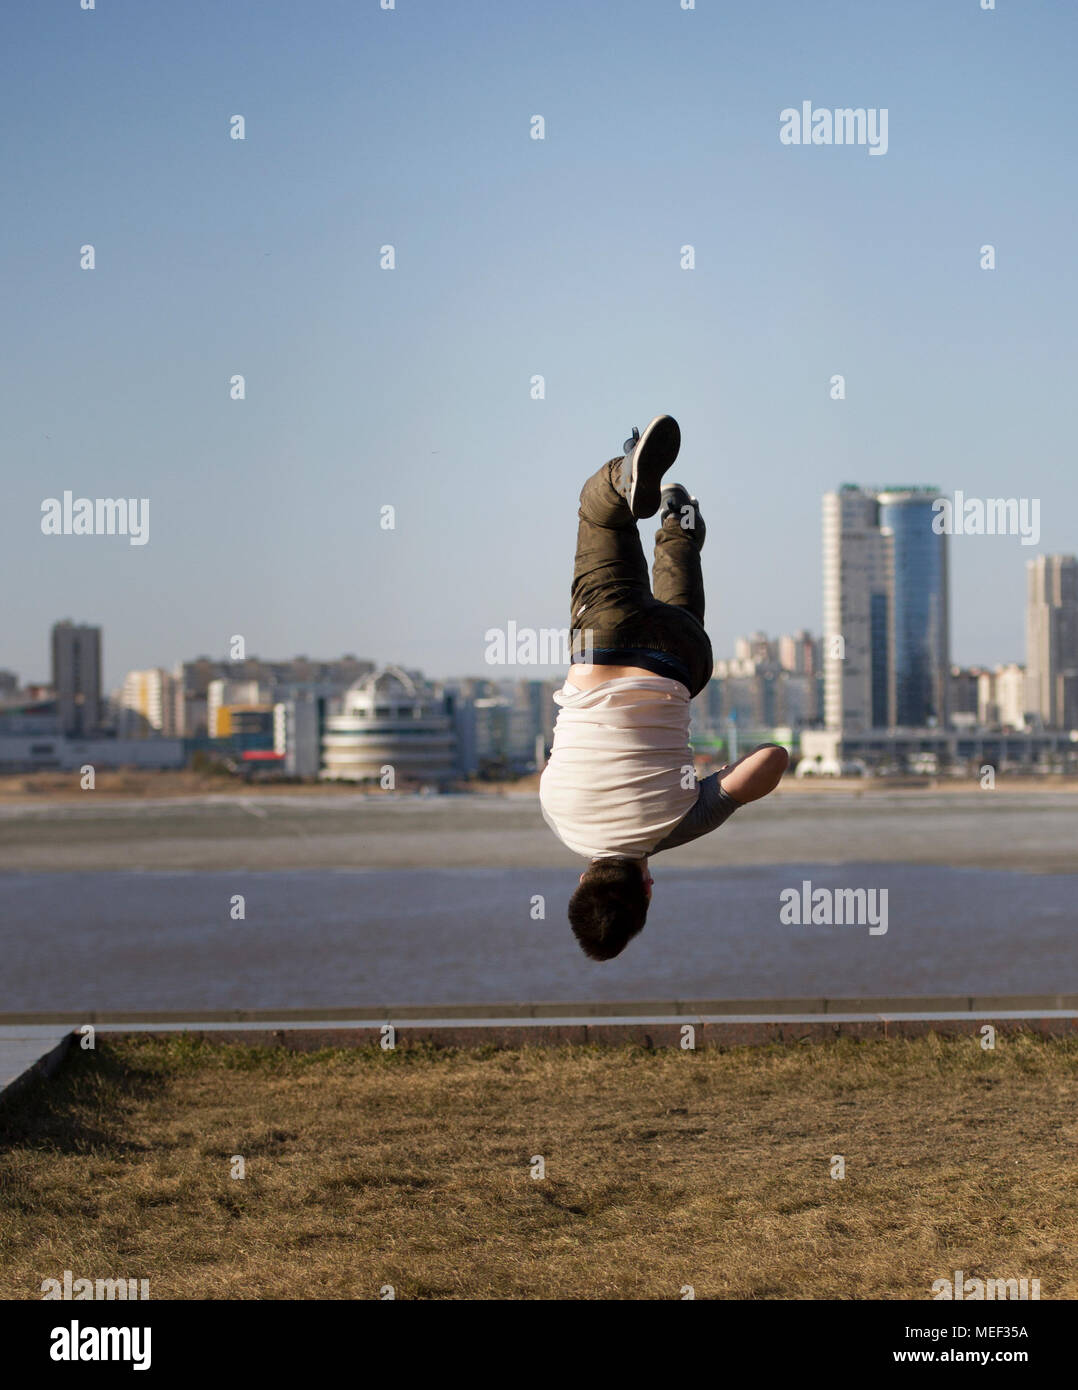 Jeune homme sportif acrobatique effectue tricks à l envers en face de  Skyline Photo Stock 4492b720c3f